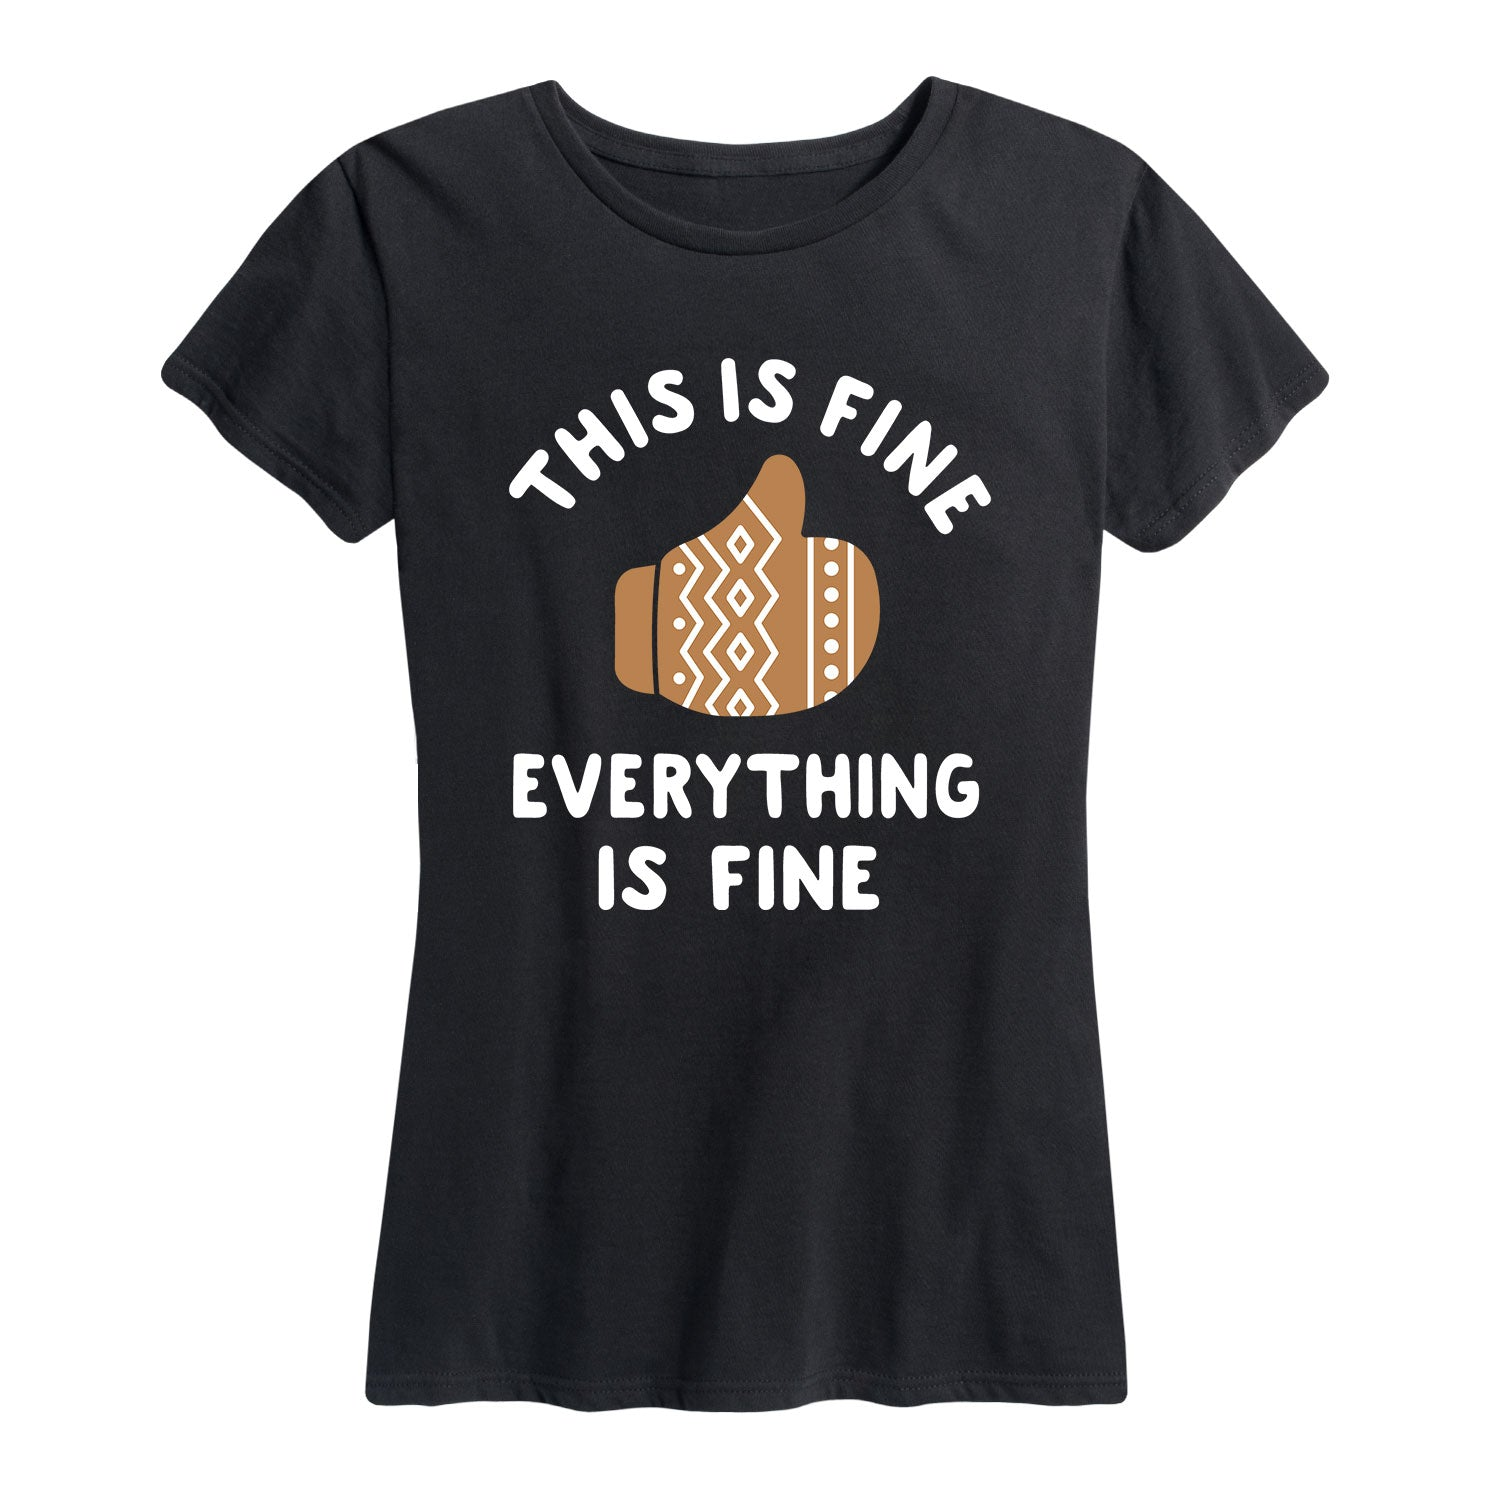 This is Fine Mittens - Women's Short Sleeve T-Shirt